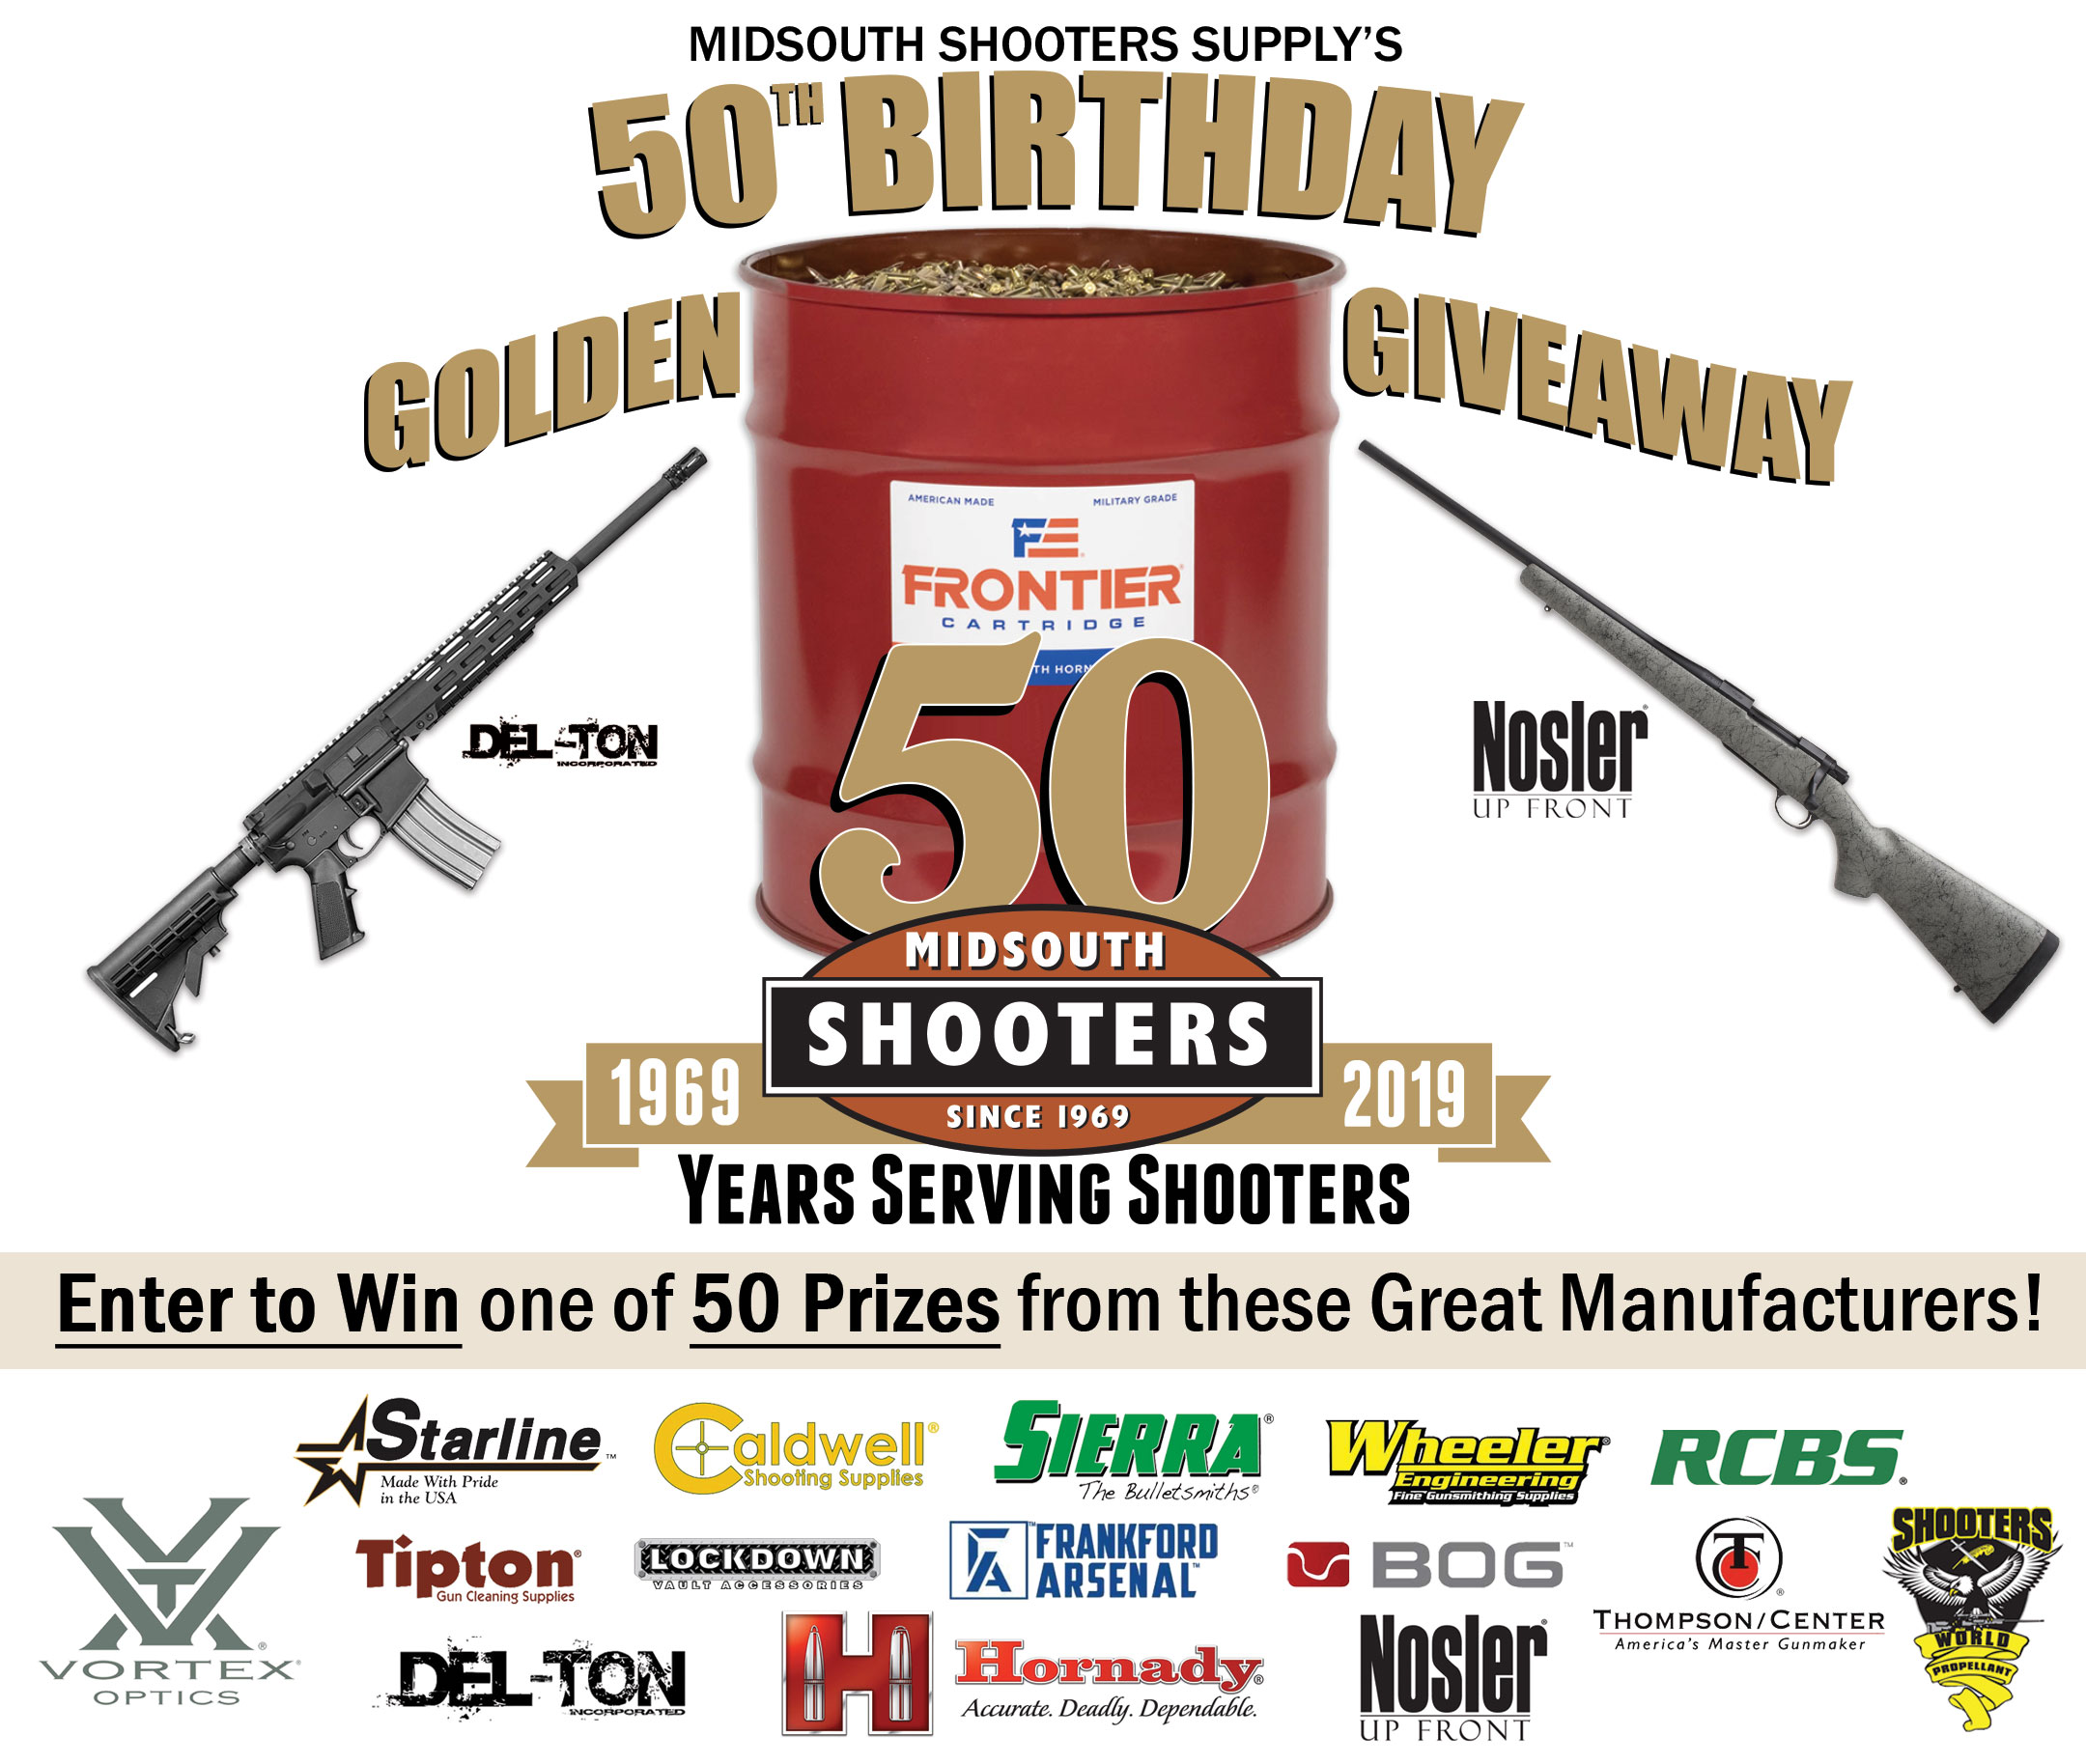 Midsouth's 50th Birthday Golden Giveaway